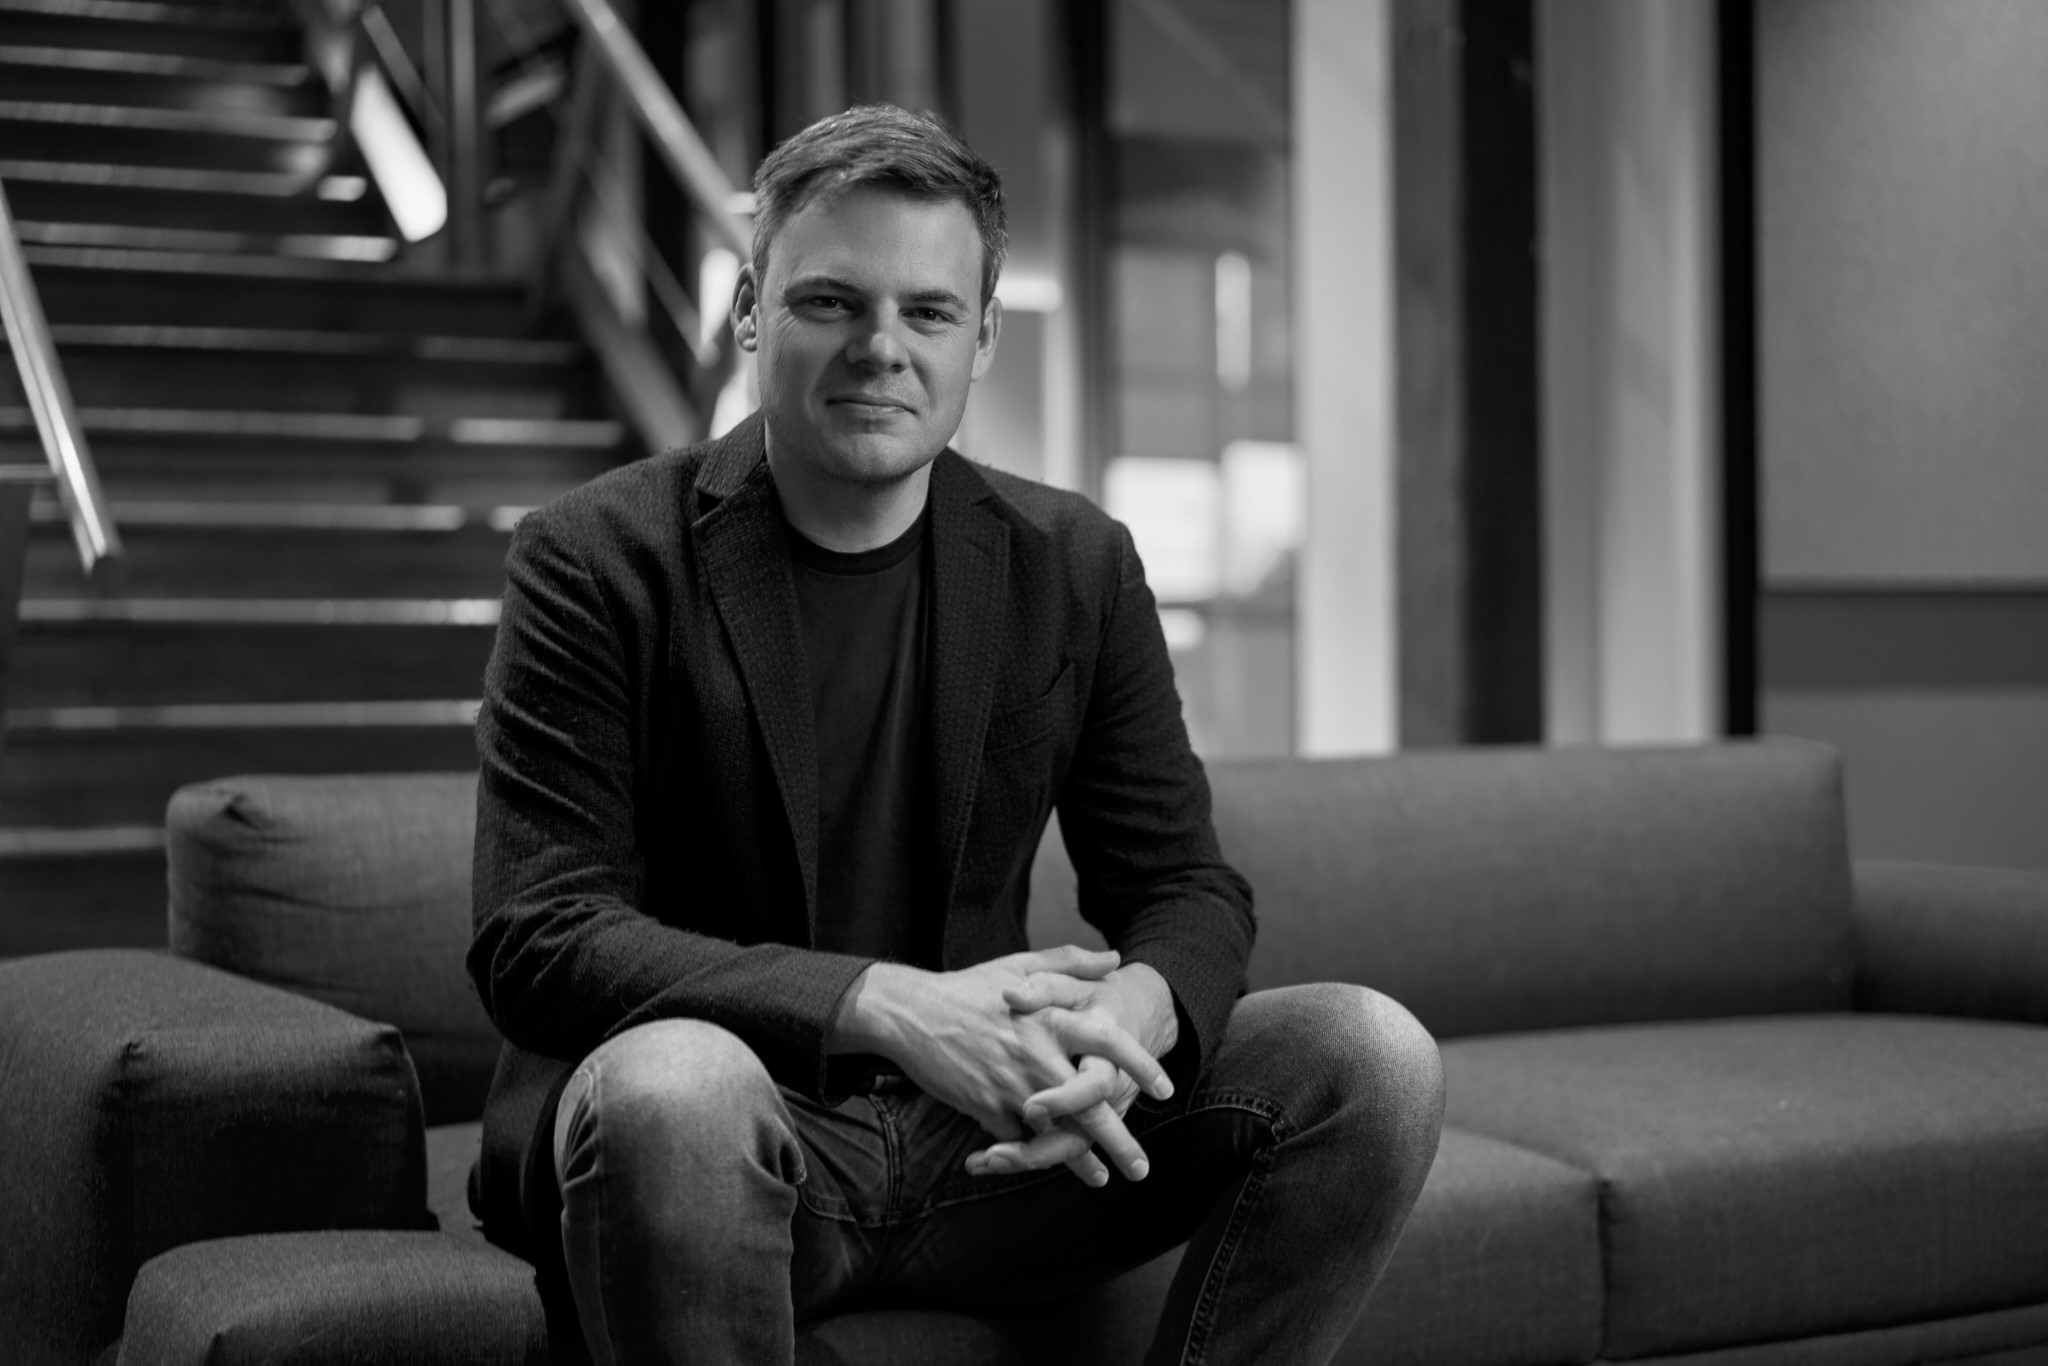 Wunderman Thompson New Zealand launches; digital experience company Heyday merges with J. Walter Thompson to form new agency and brand